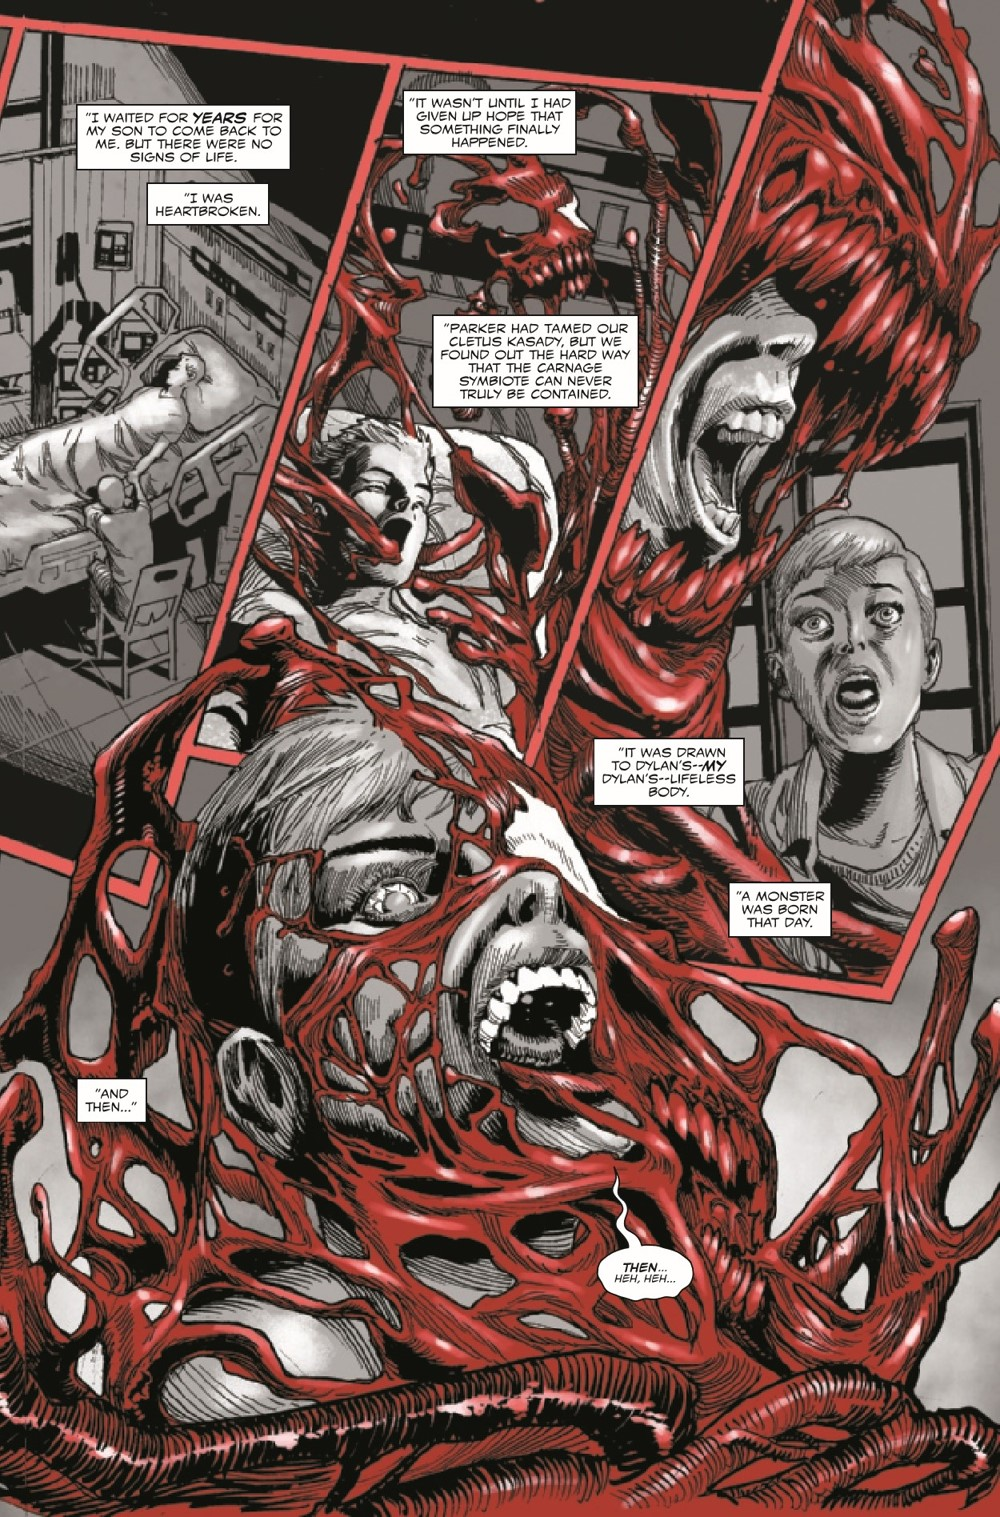 CARNBLKWHBL2021004_Preview-4 ComicList Previews: CARNAGE BLACK WHITE AND BLOOD #4 (OF 4)